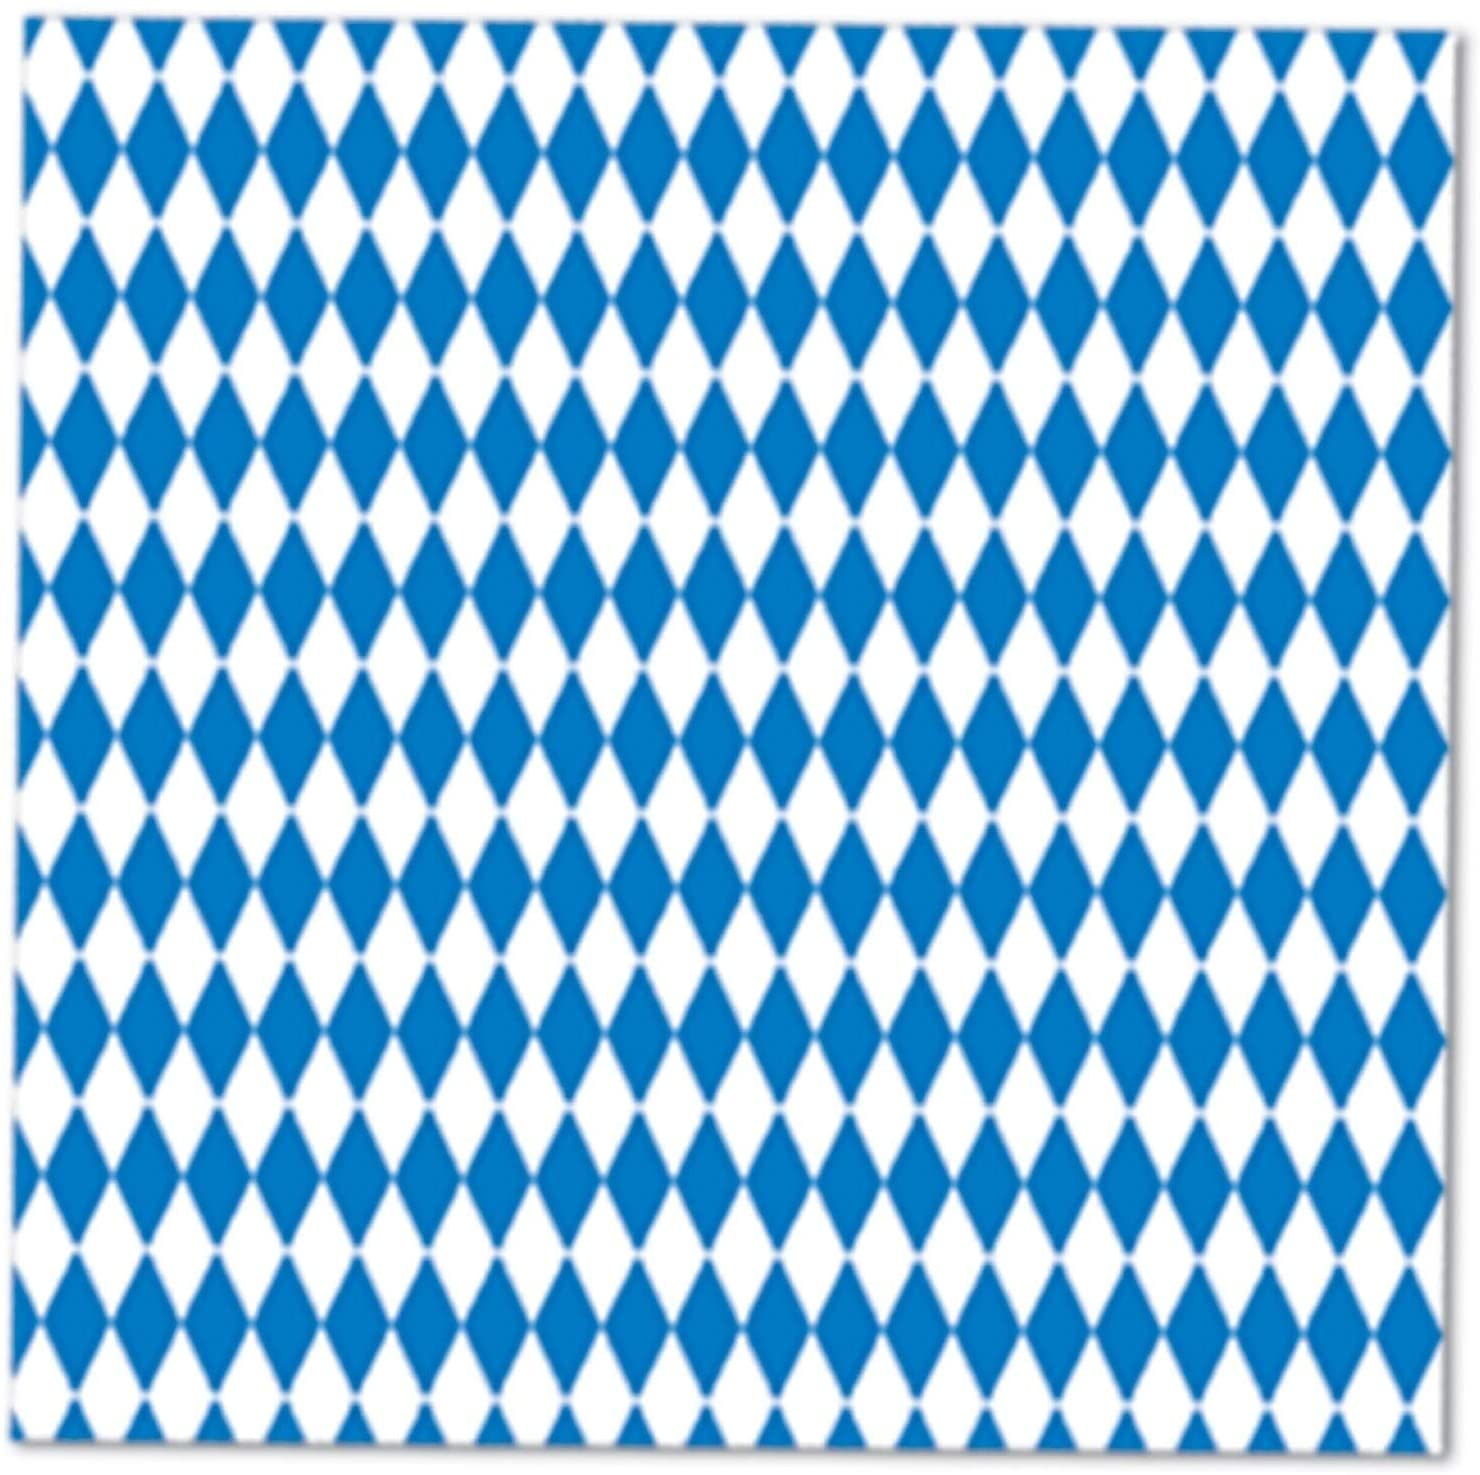 2 ply Blue White Oktoberfest Napkins 12 Pack (16/pkg) Modern Contemporary Square Organic